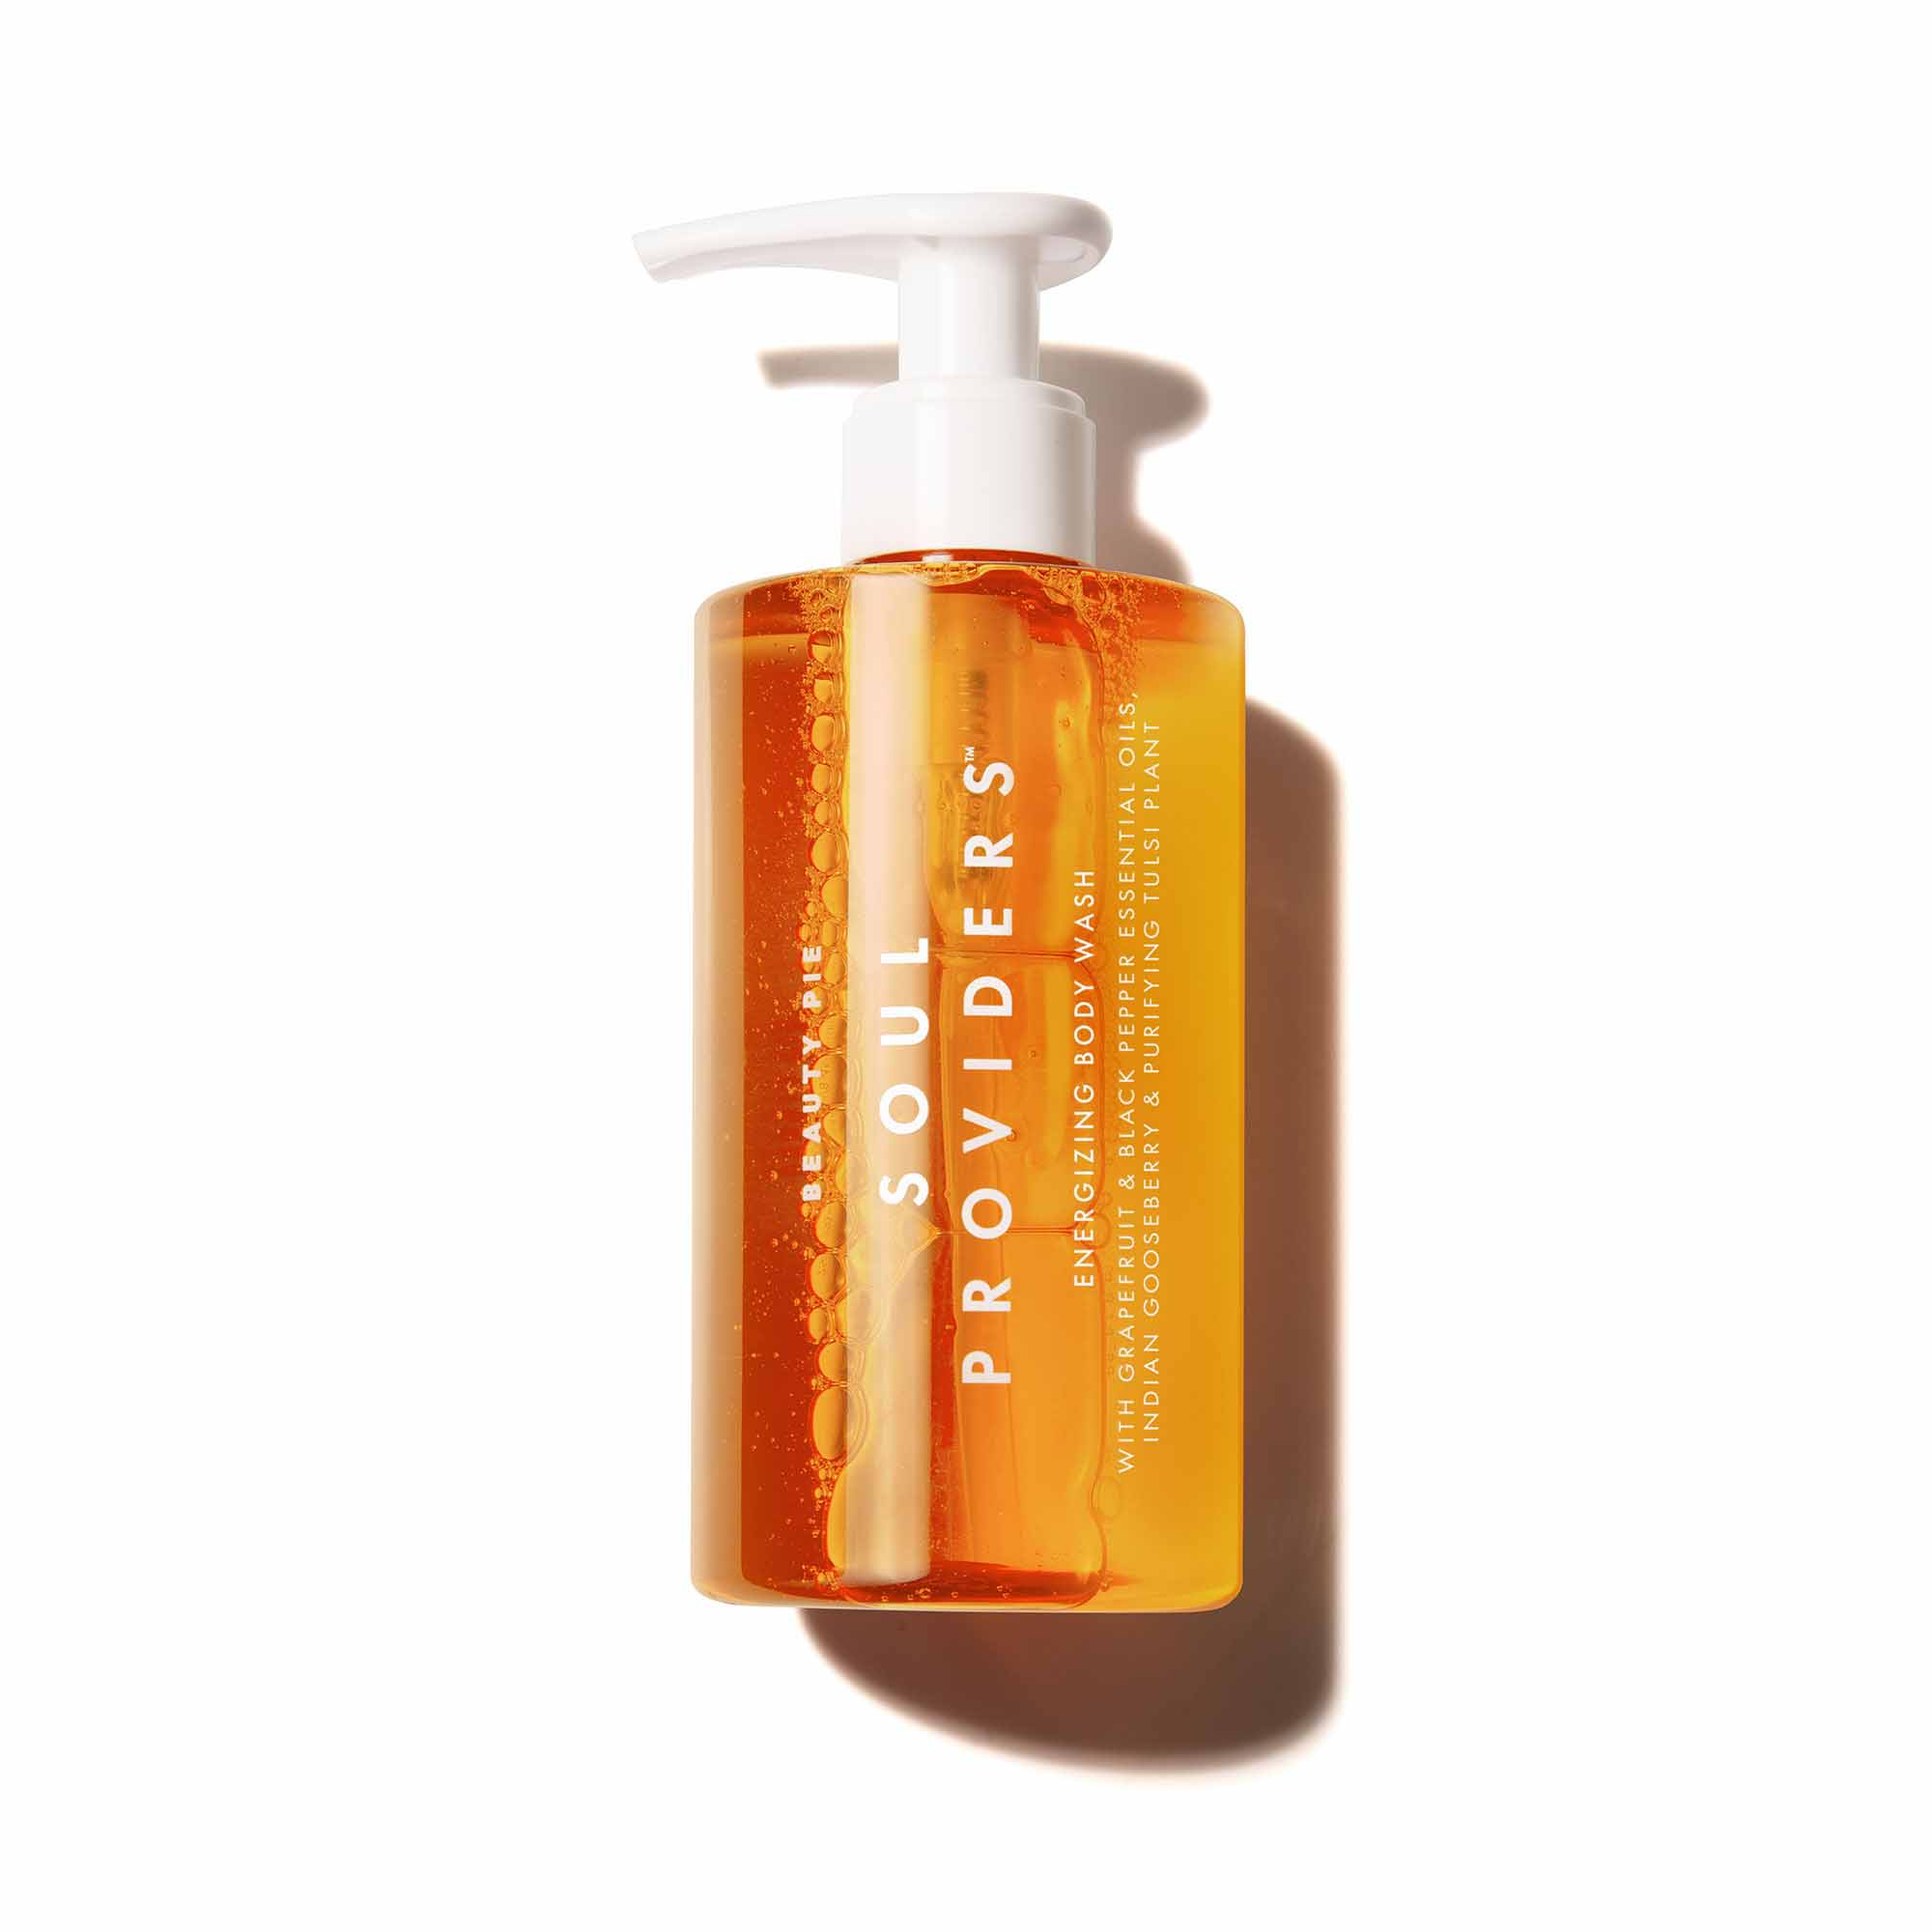 Soul Providers Energizing Body Wash by Beauty Pie